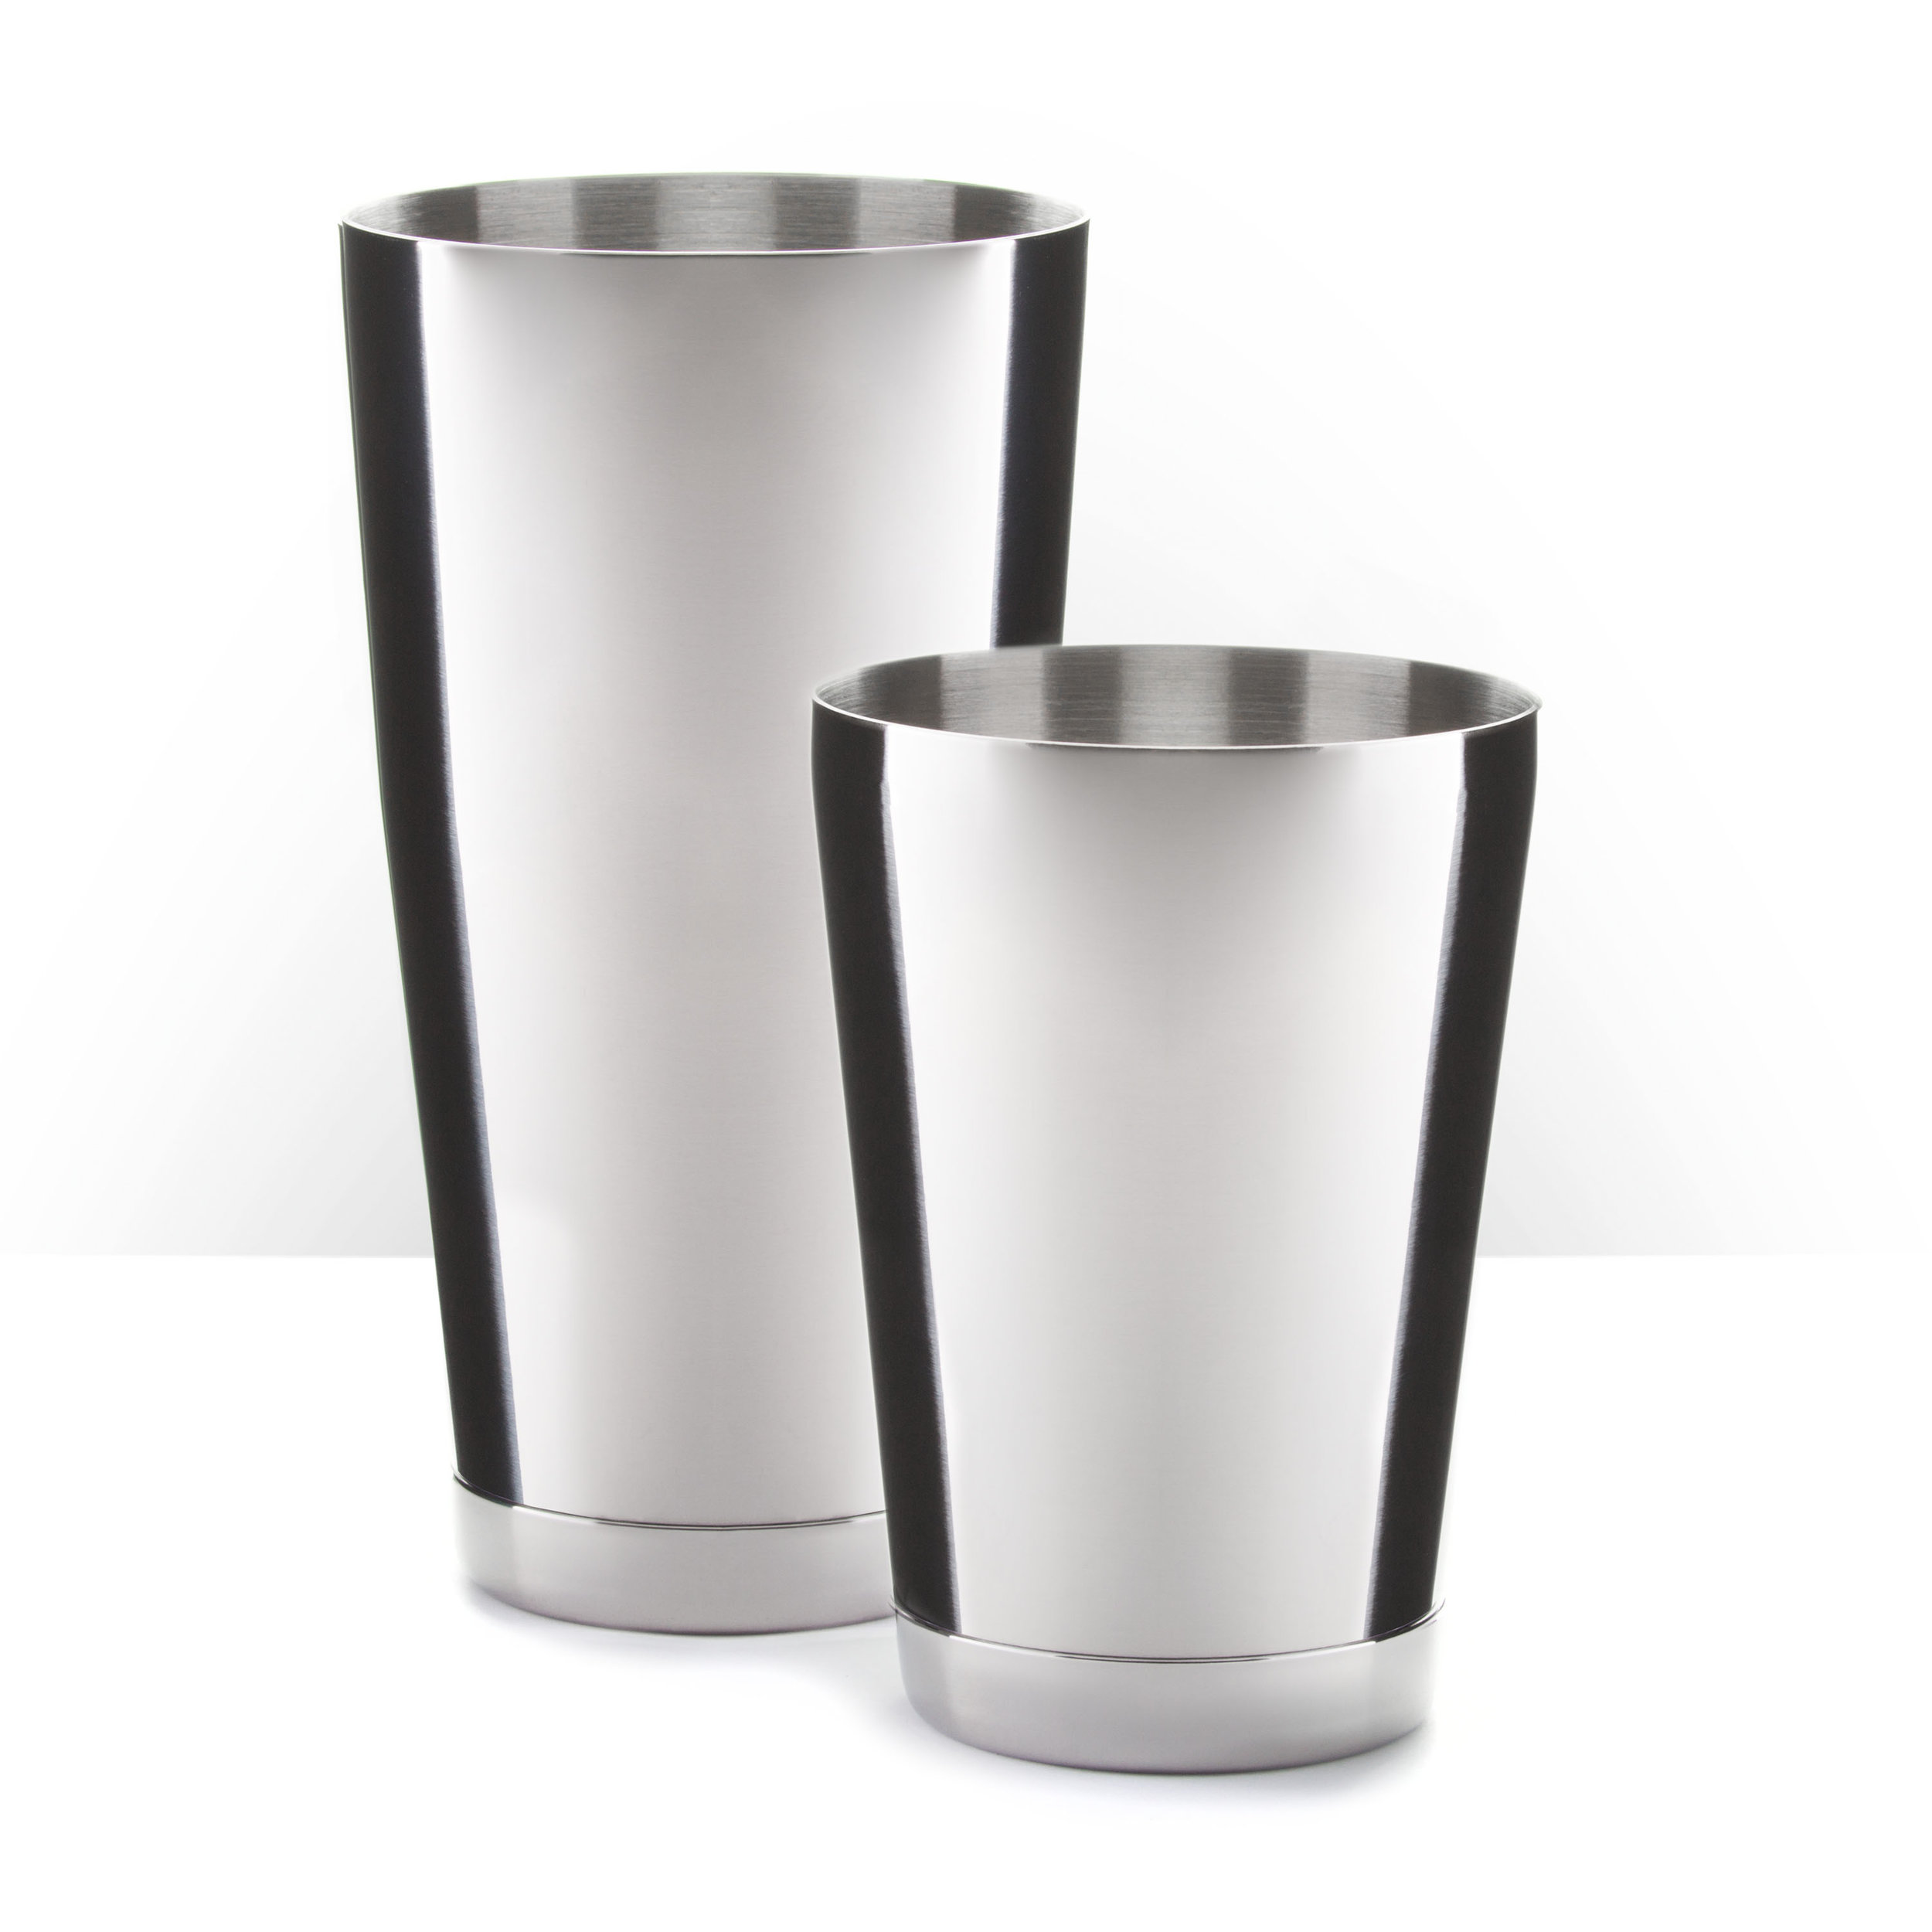 Founder's Tin Set - Polished Stainless Steel, 28oz. & 18oz